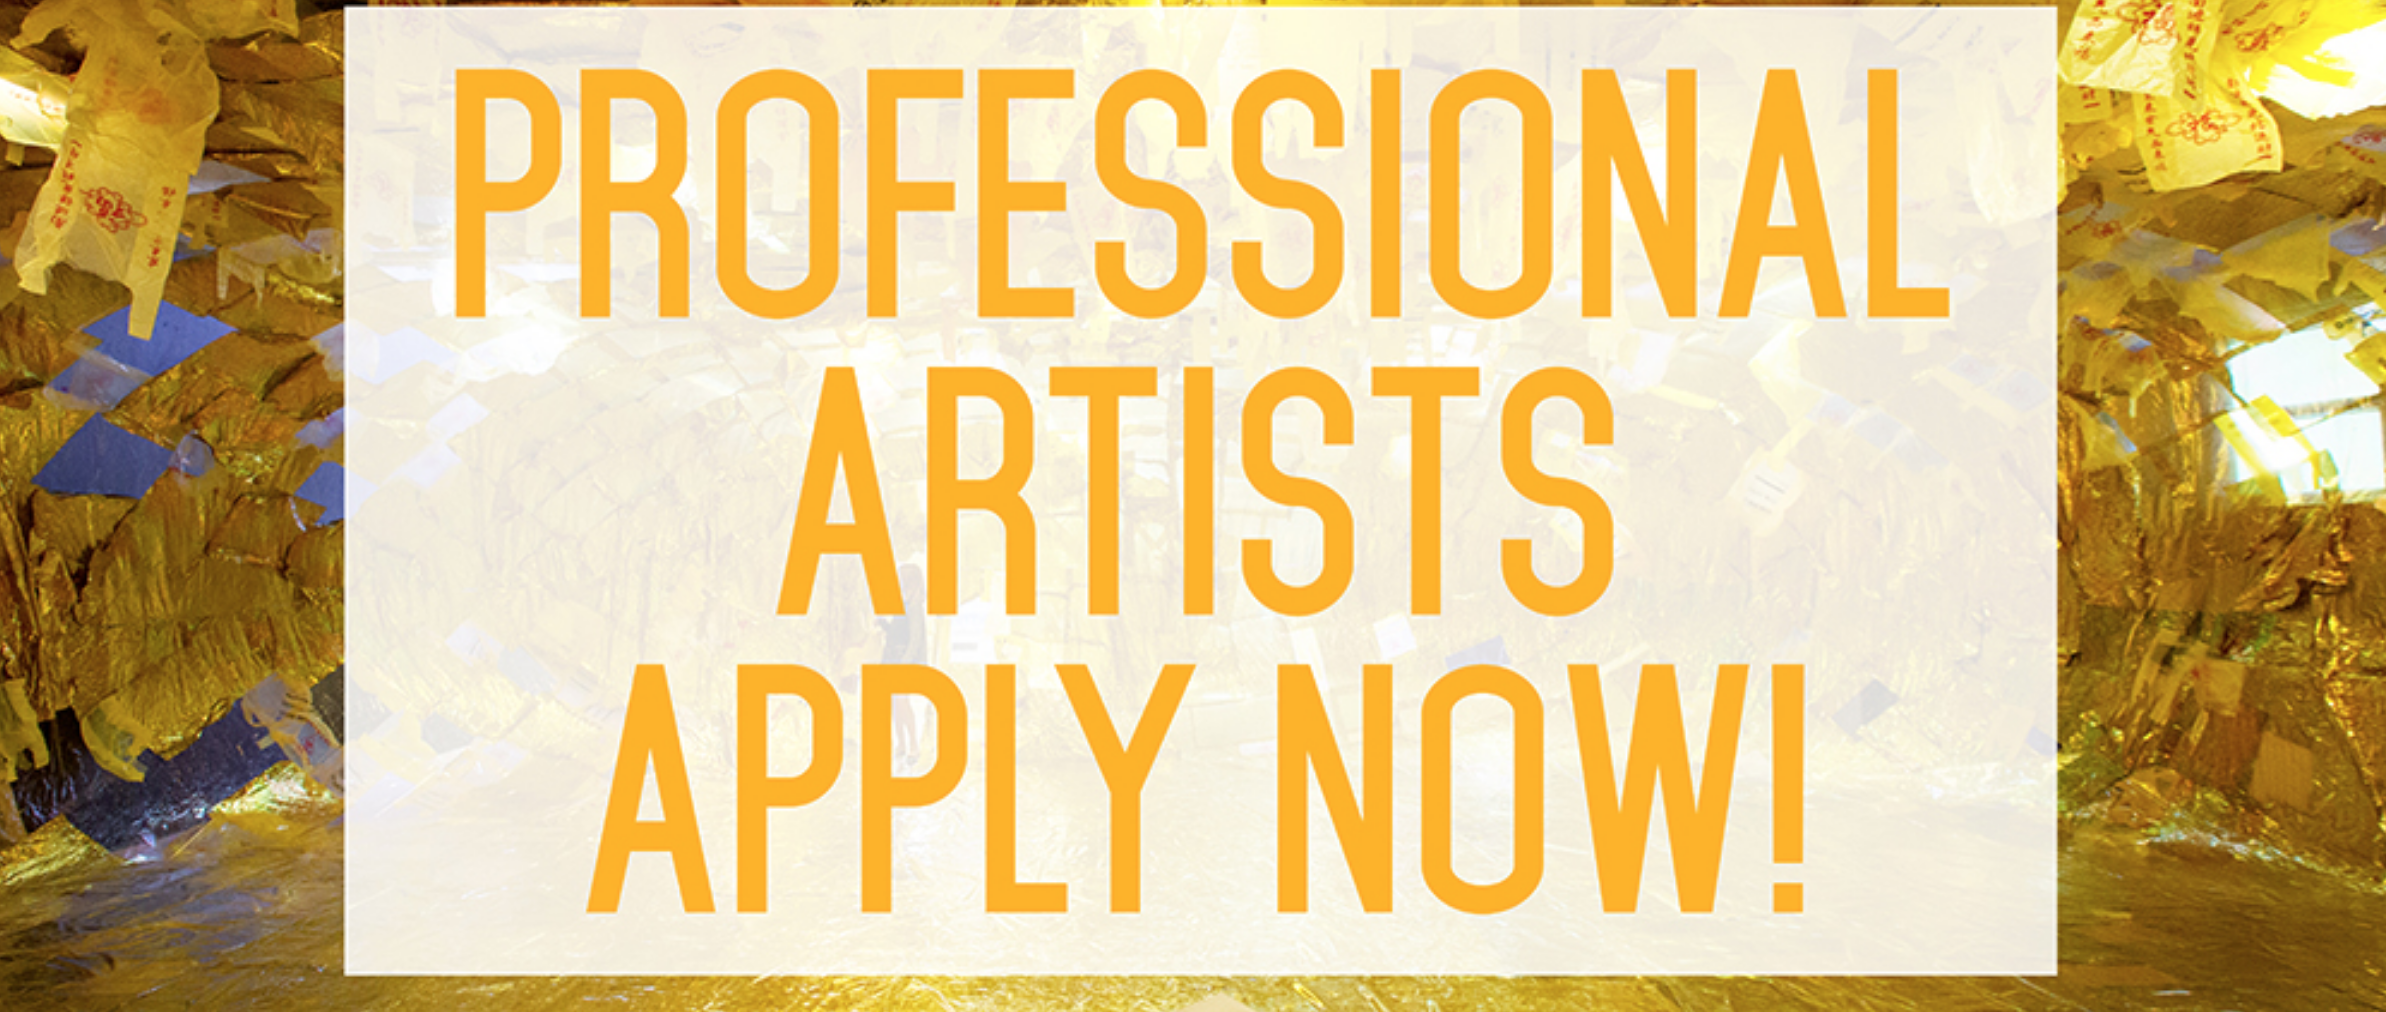 openart apply